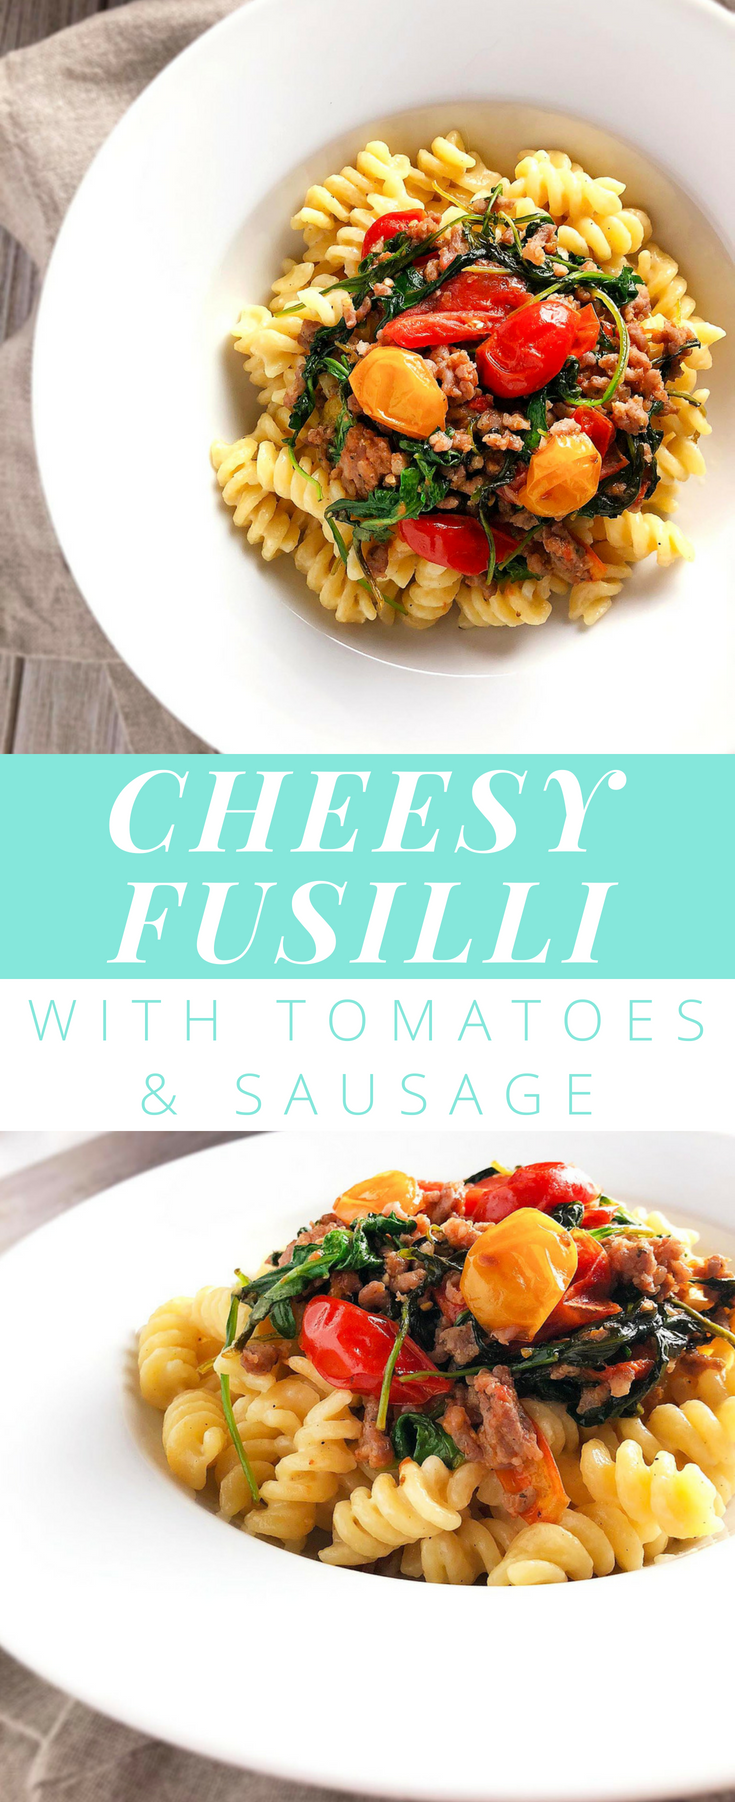 pin_cheesy_fusilli_with_tomatoes_sausage2.png